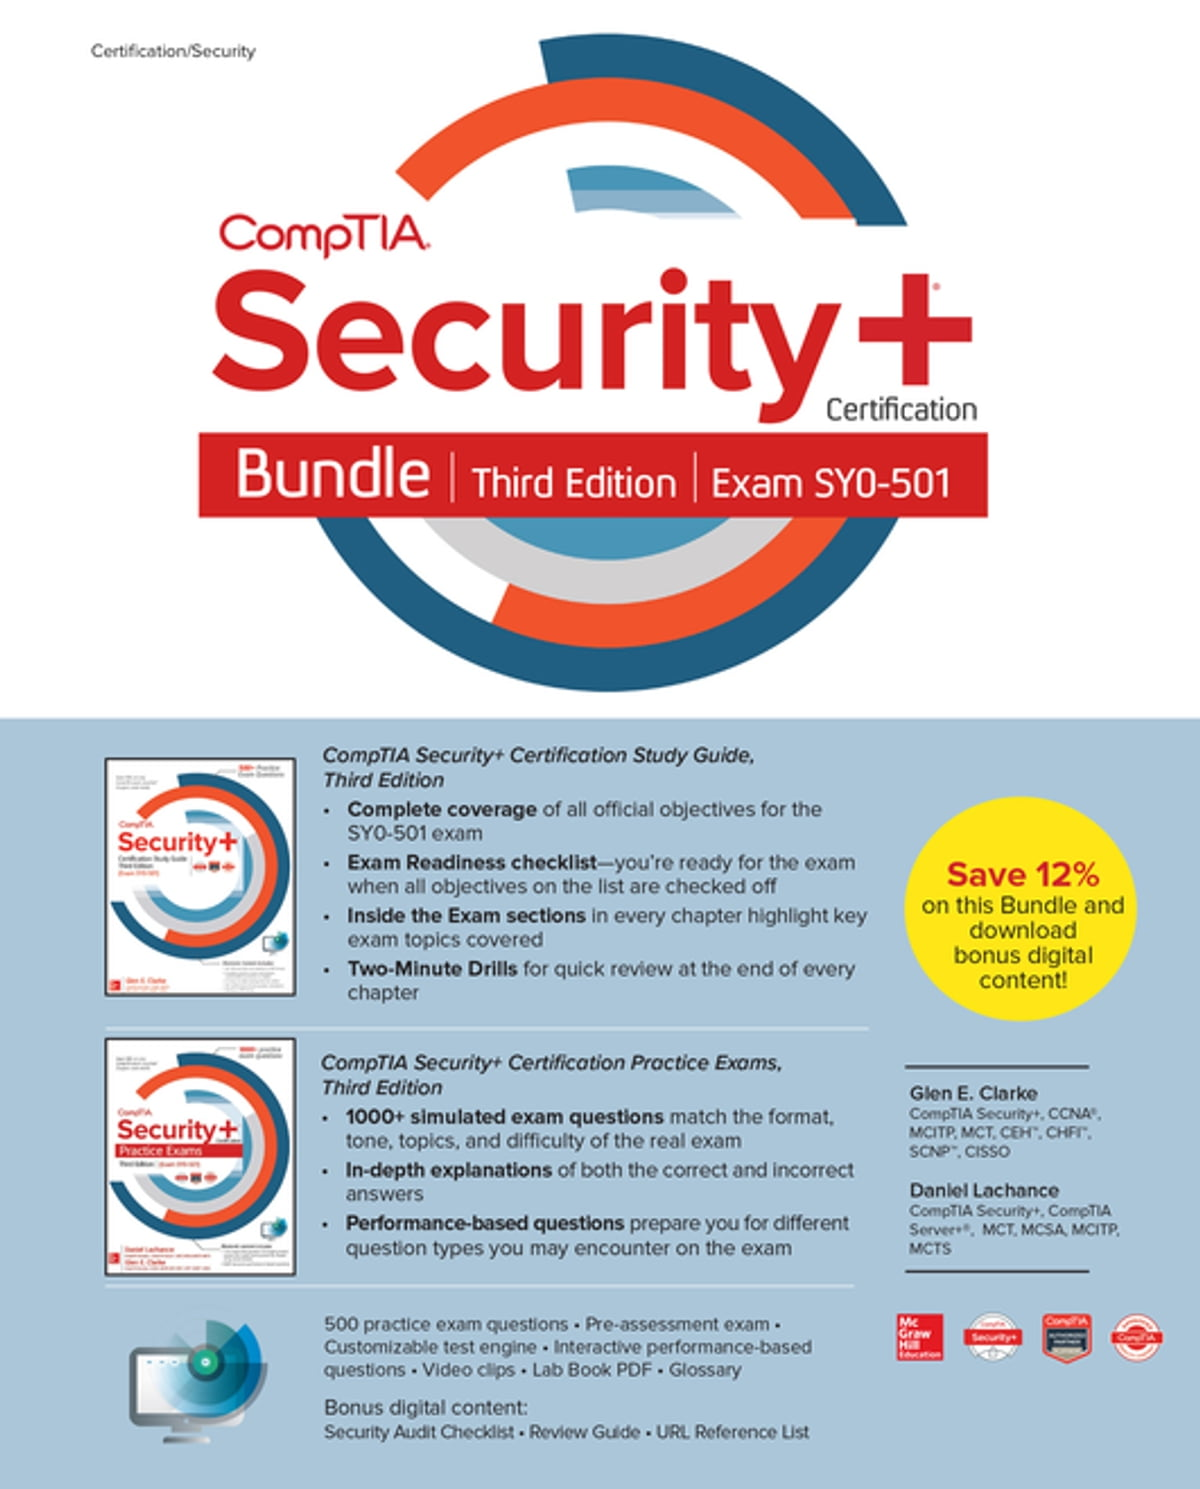 Comptia Security Certification Bundle Third Edition Exam Sy0 501